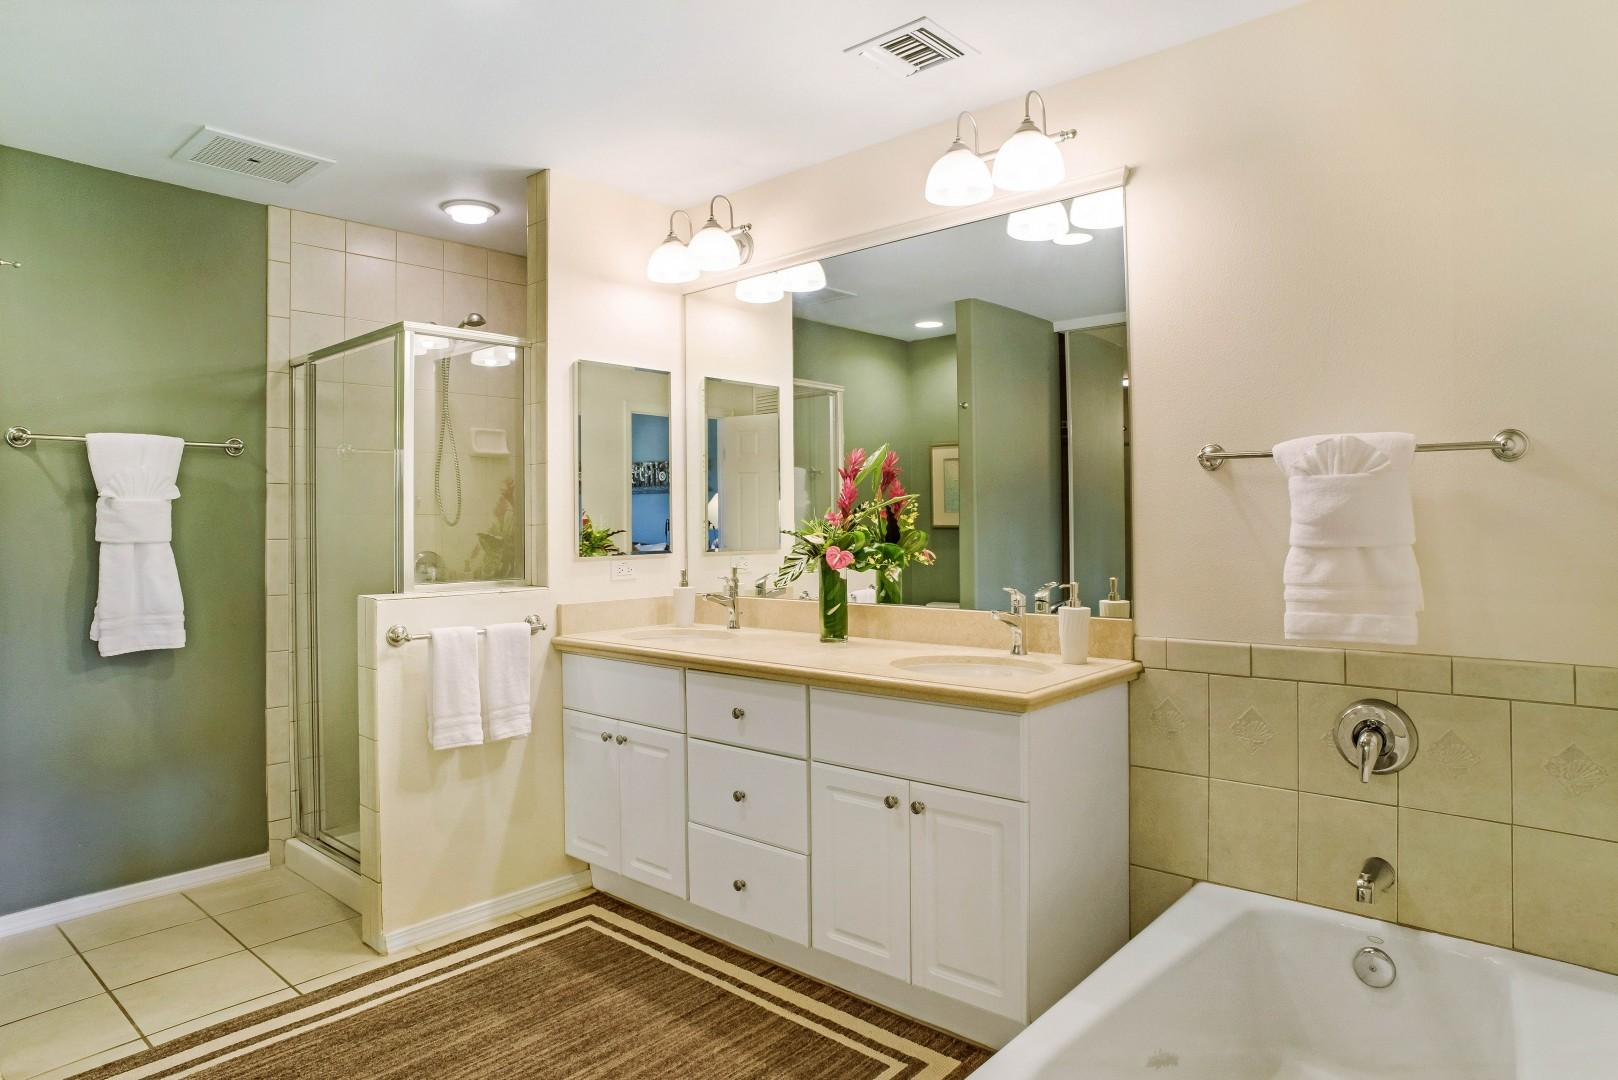 Spacious Master Bath w/ Dual Sinks, Large Soaking Tub and Glass Enclosed Shower